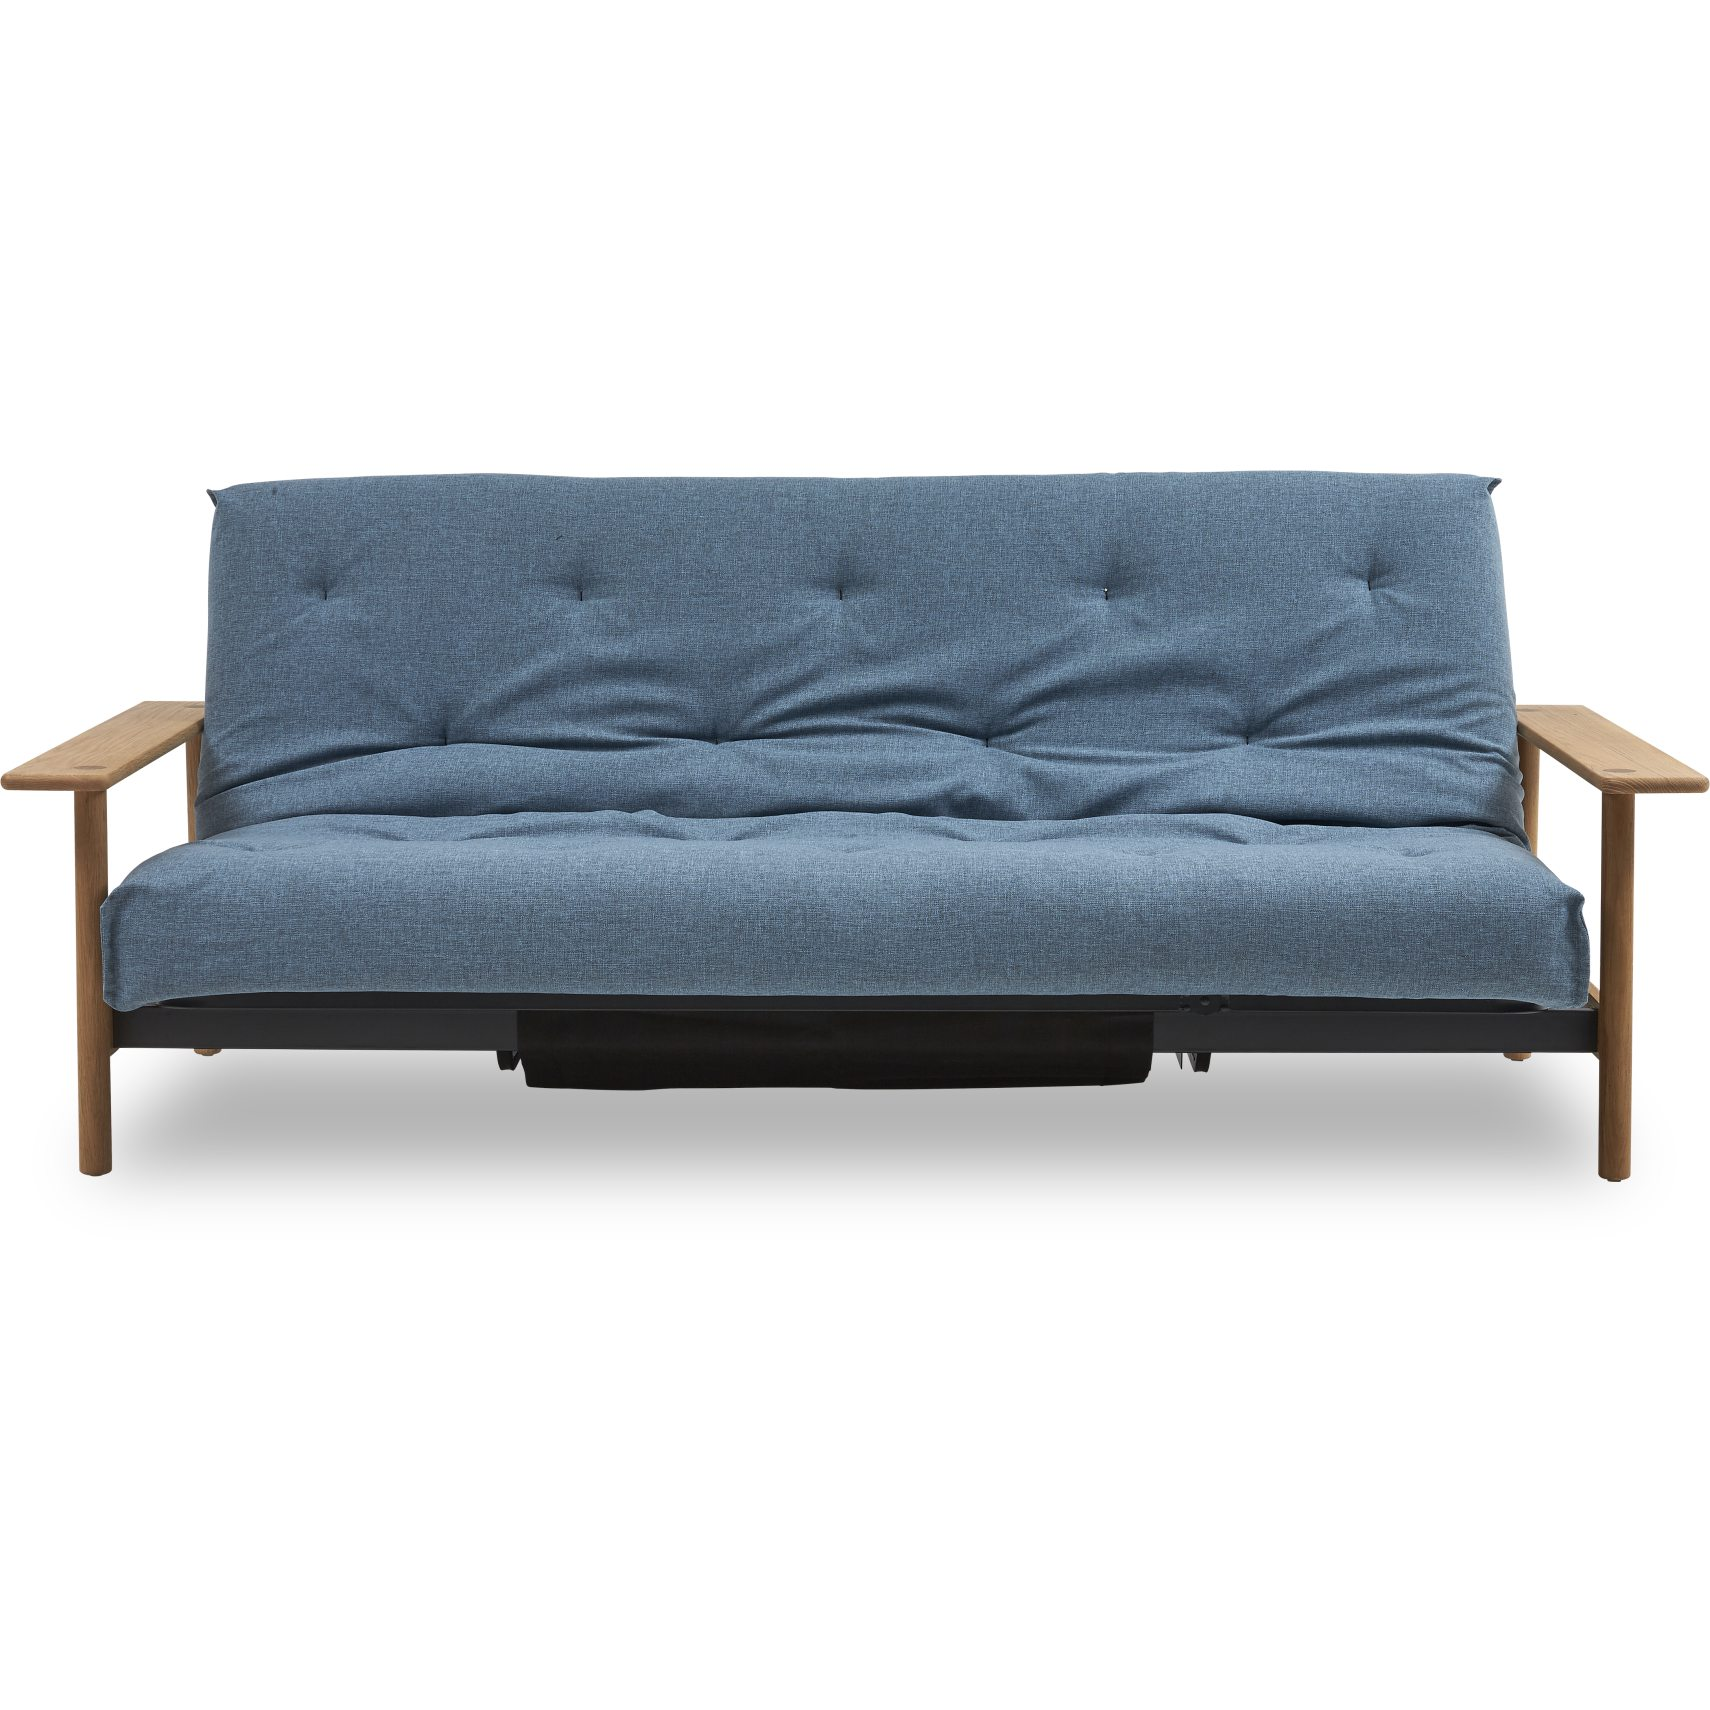 Innovation Living - Balder Soft Spring Sovesofa - Sovesofa